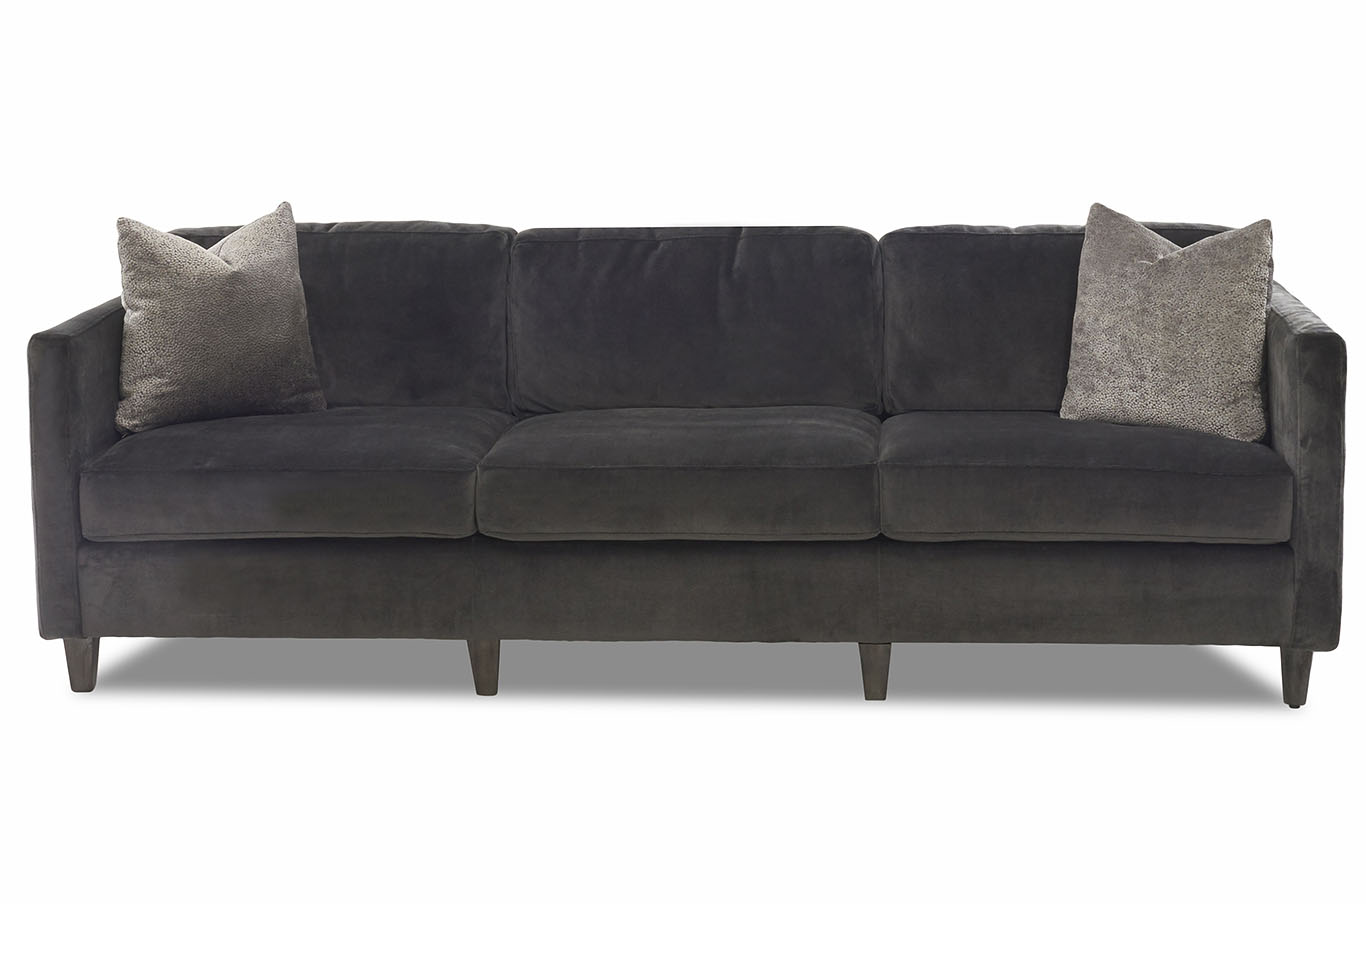 Beau Soho Romo Pewter Stationary Fabric Sofa,Klaussner Home Furnishings